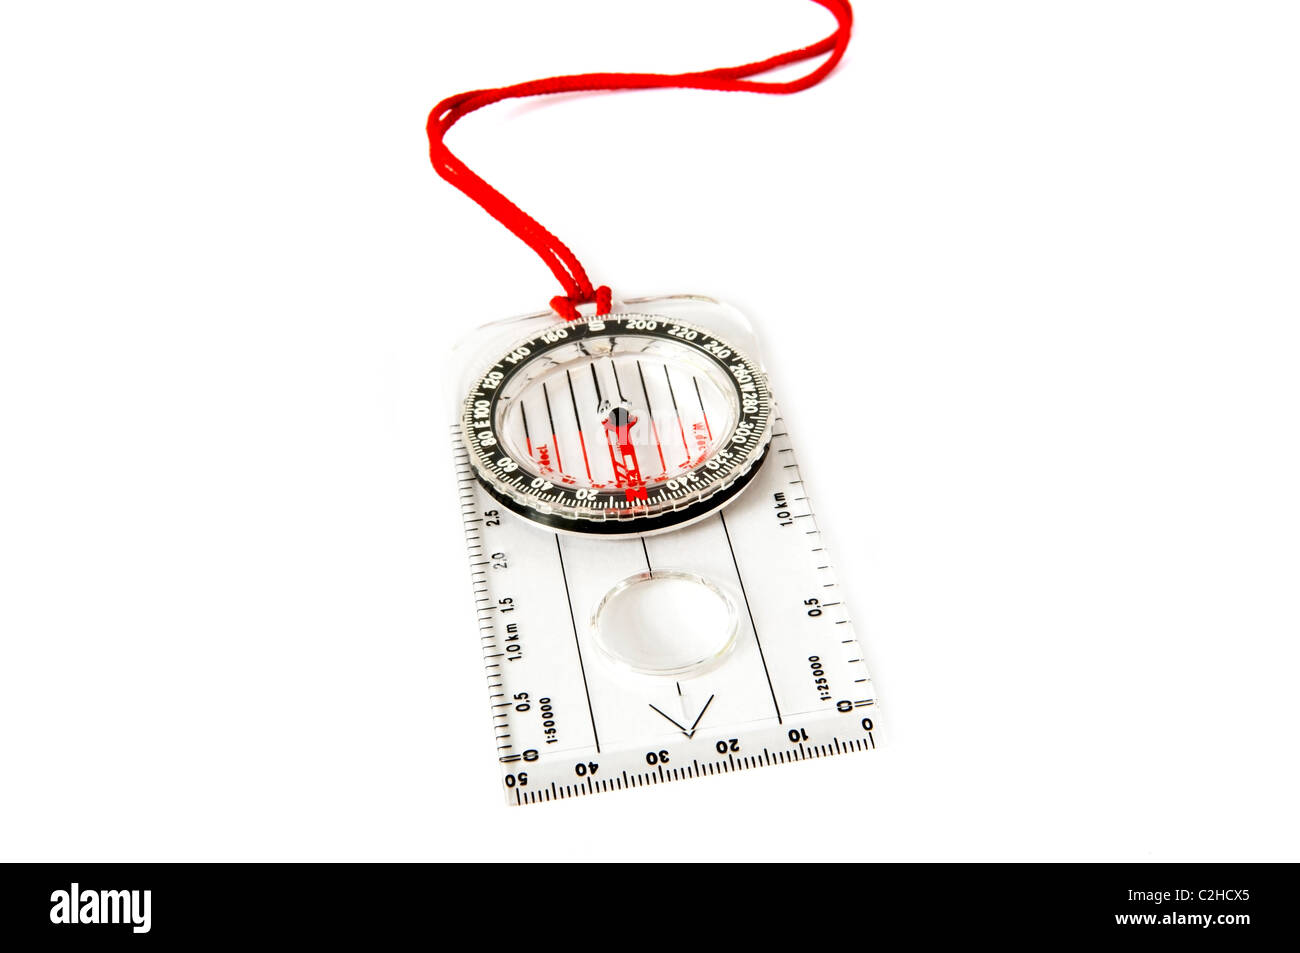 Classic orienteering compass isolated over white - Stock Image